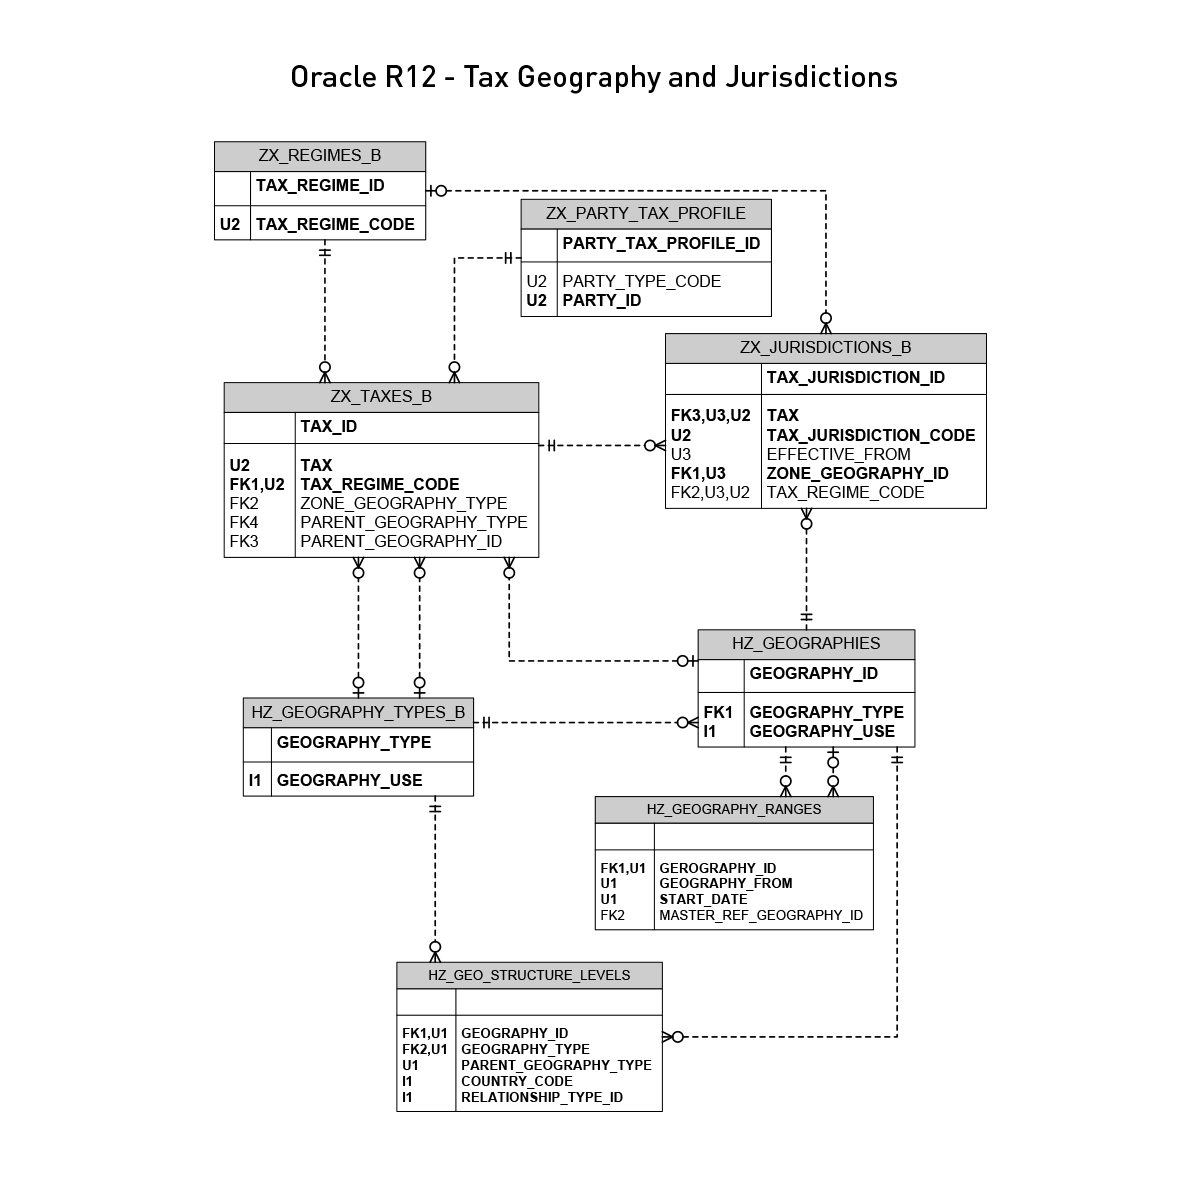 Oracle EBS R12 Tax Geography and Jurisdictions